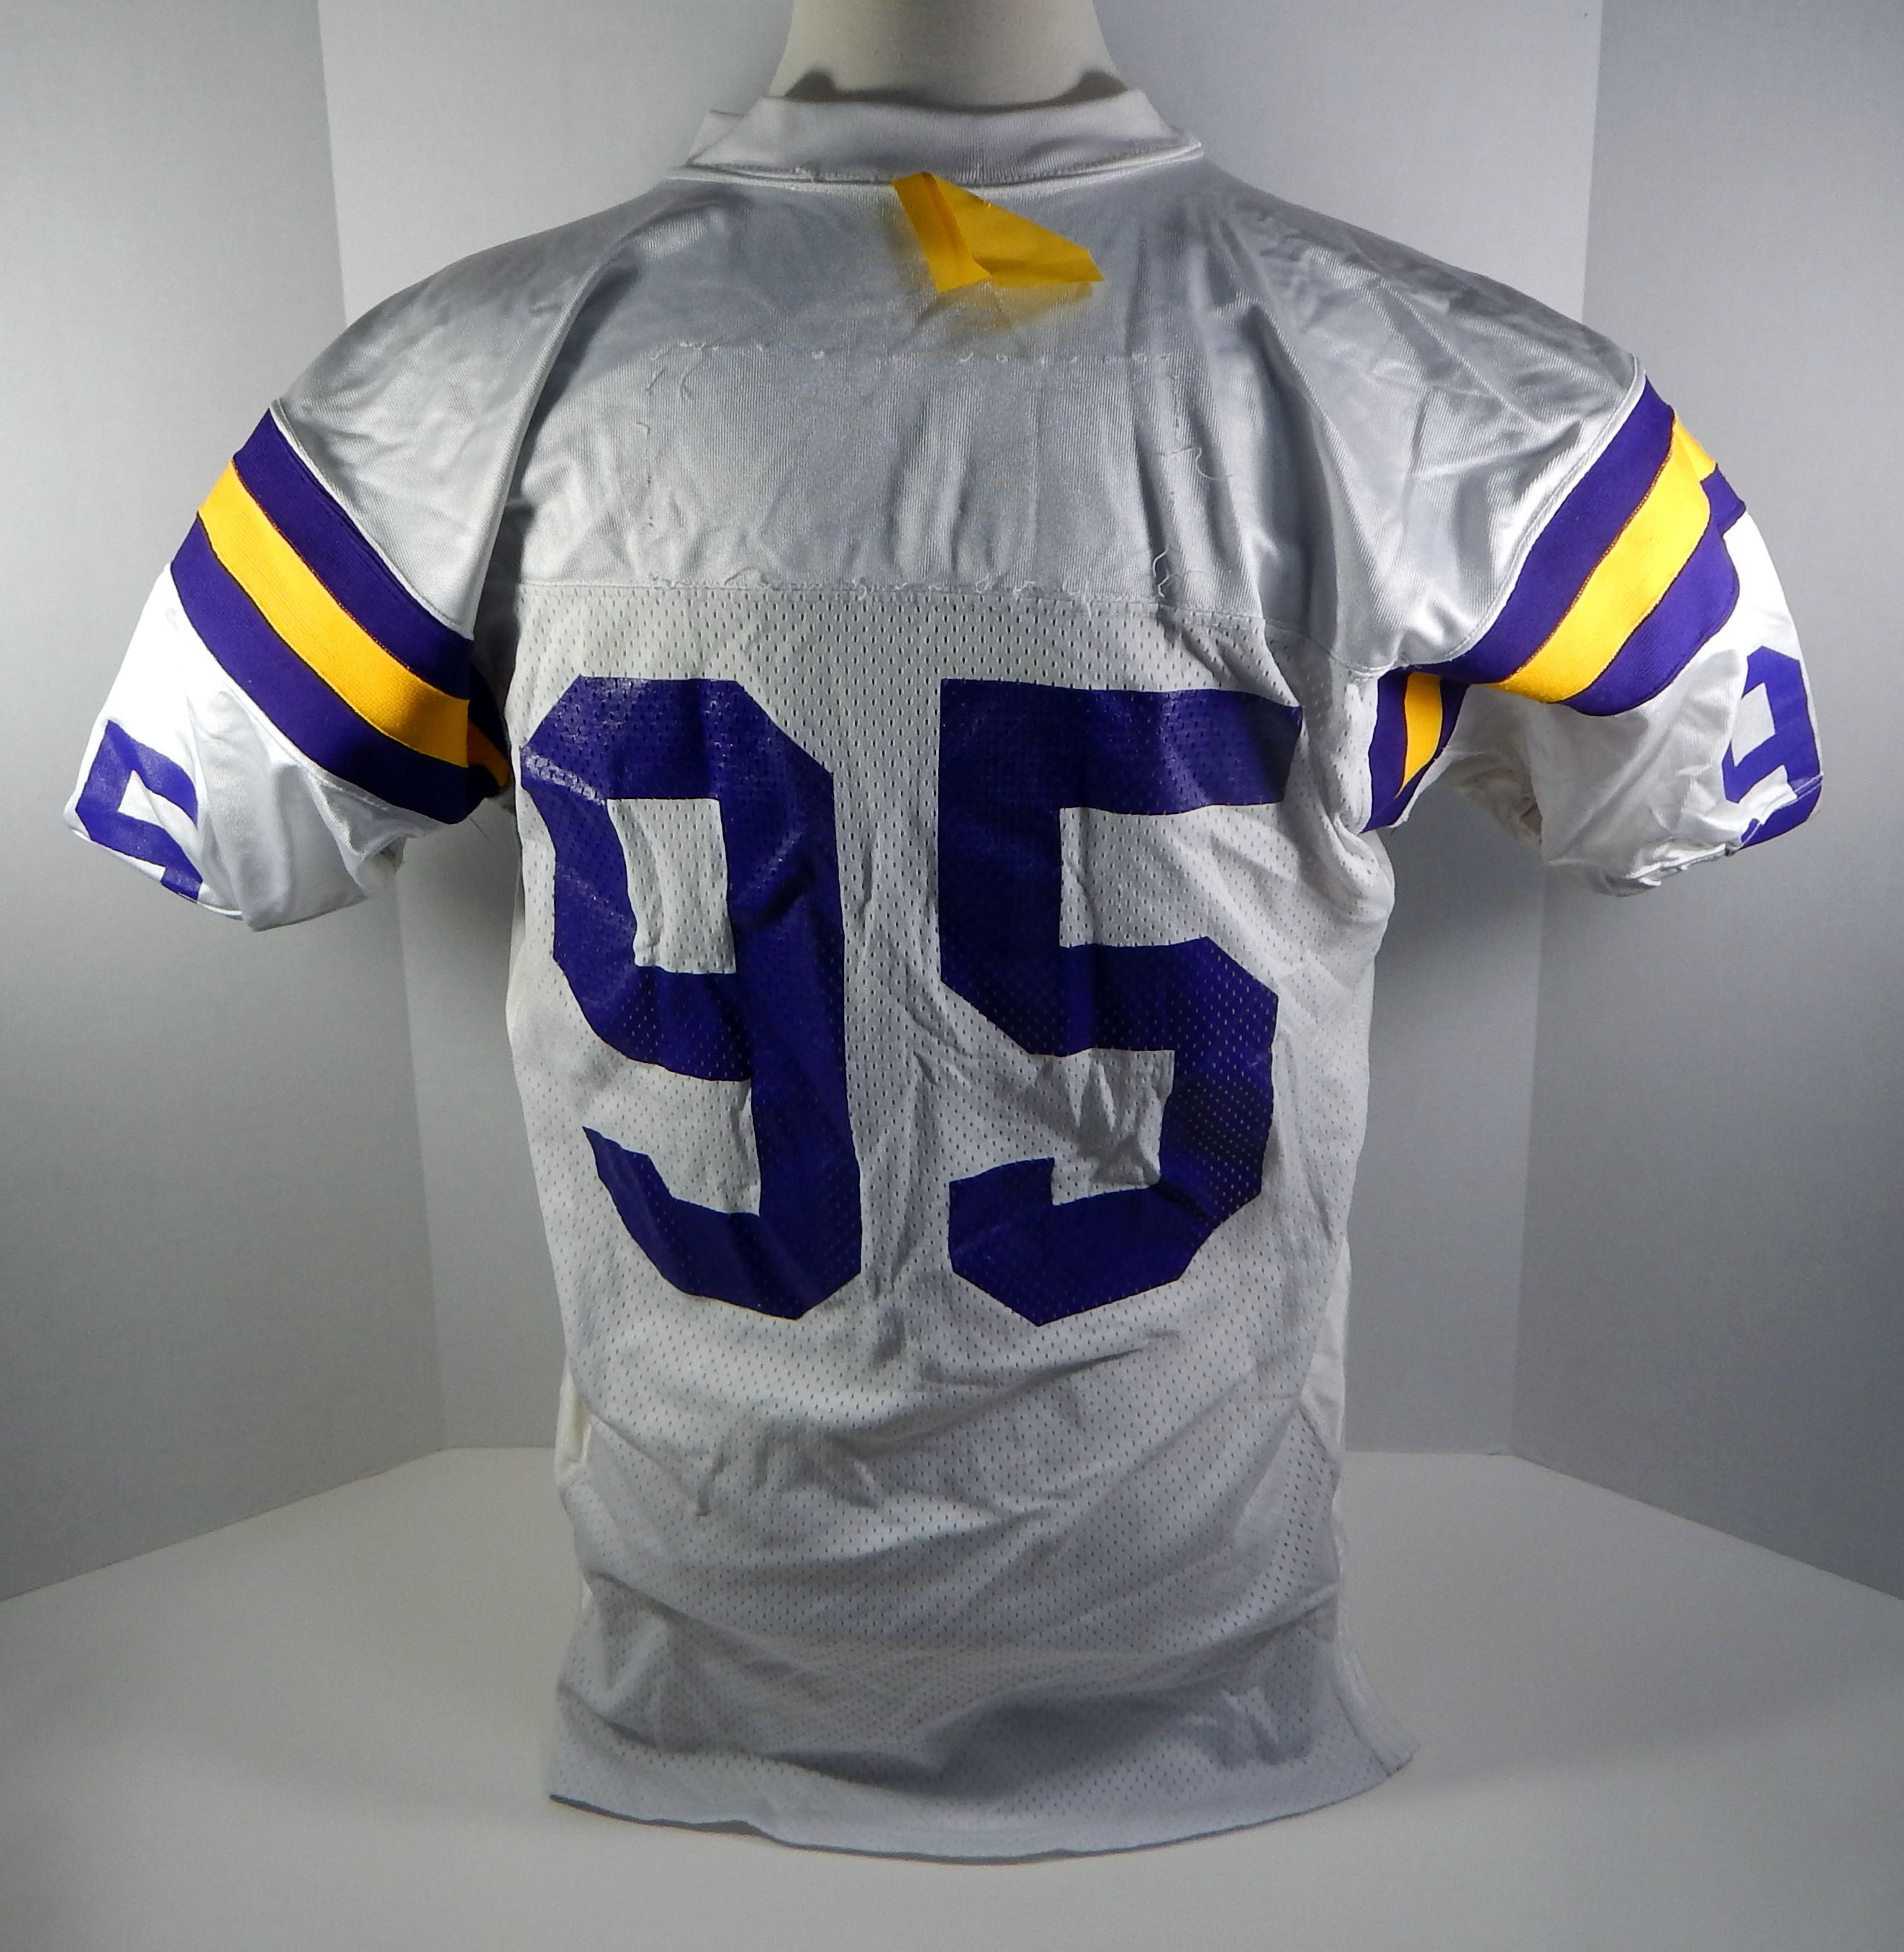 info for a7e73 fc58a Details about Minnesota Vikings #95 Game Issued White Jersey VIKSNC00324